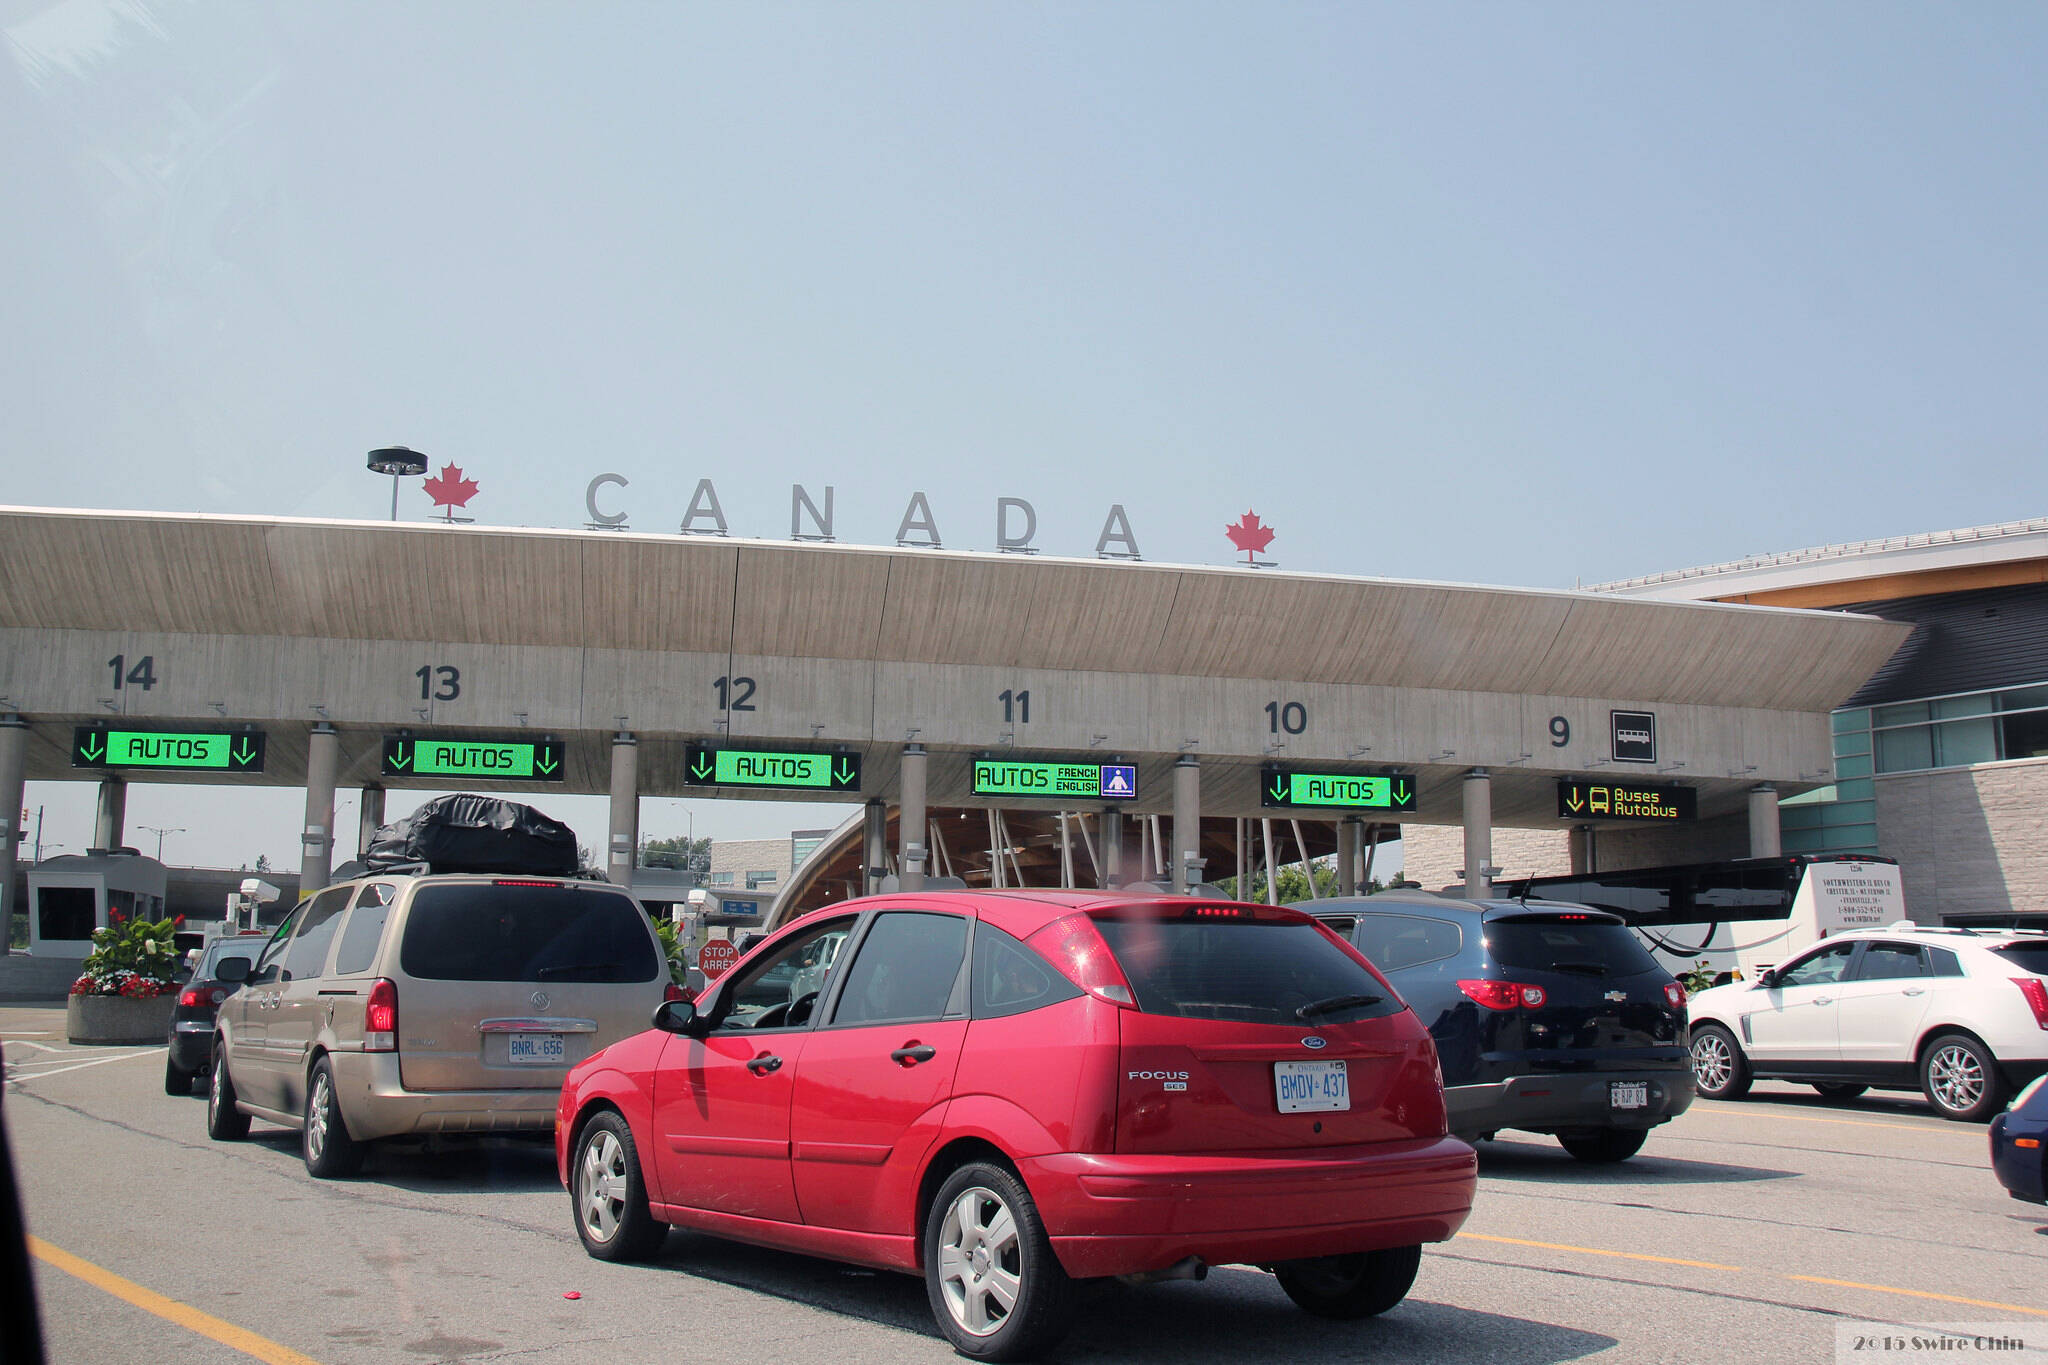 when will the us canada border open up again